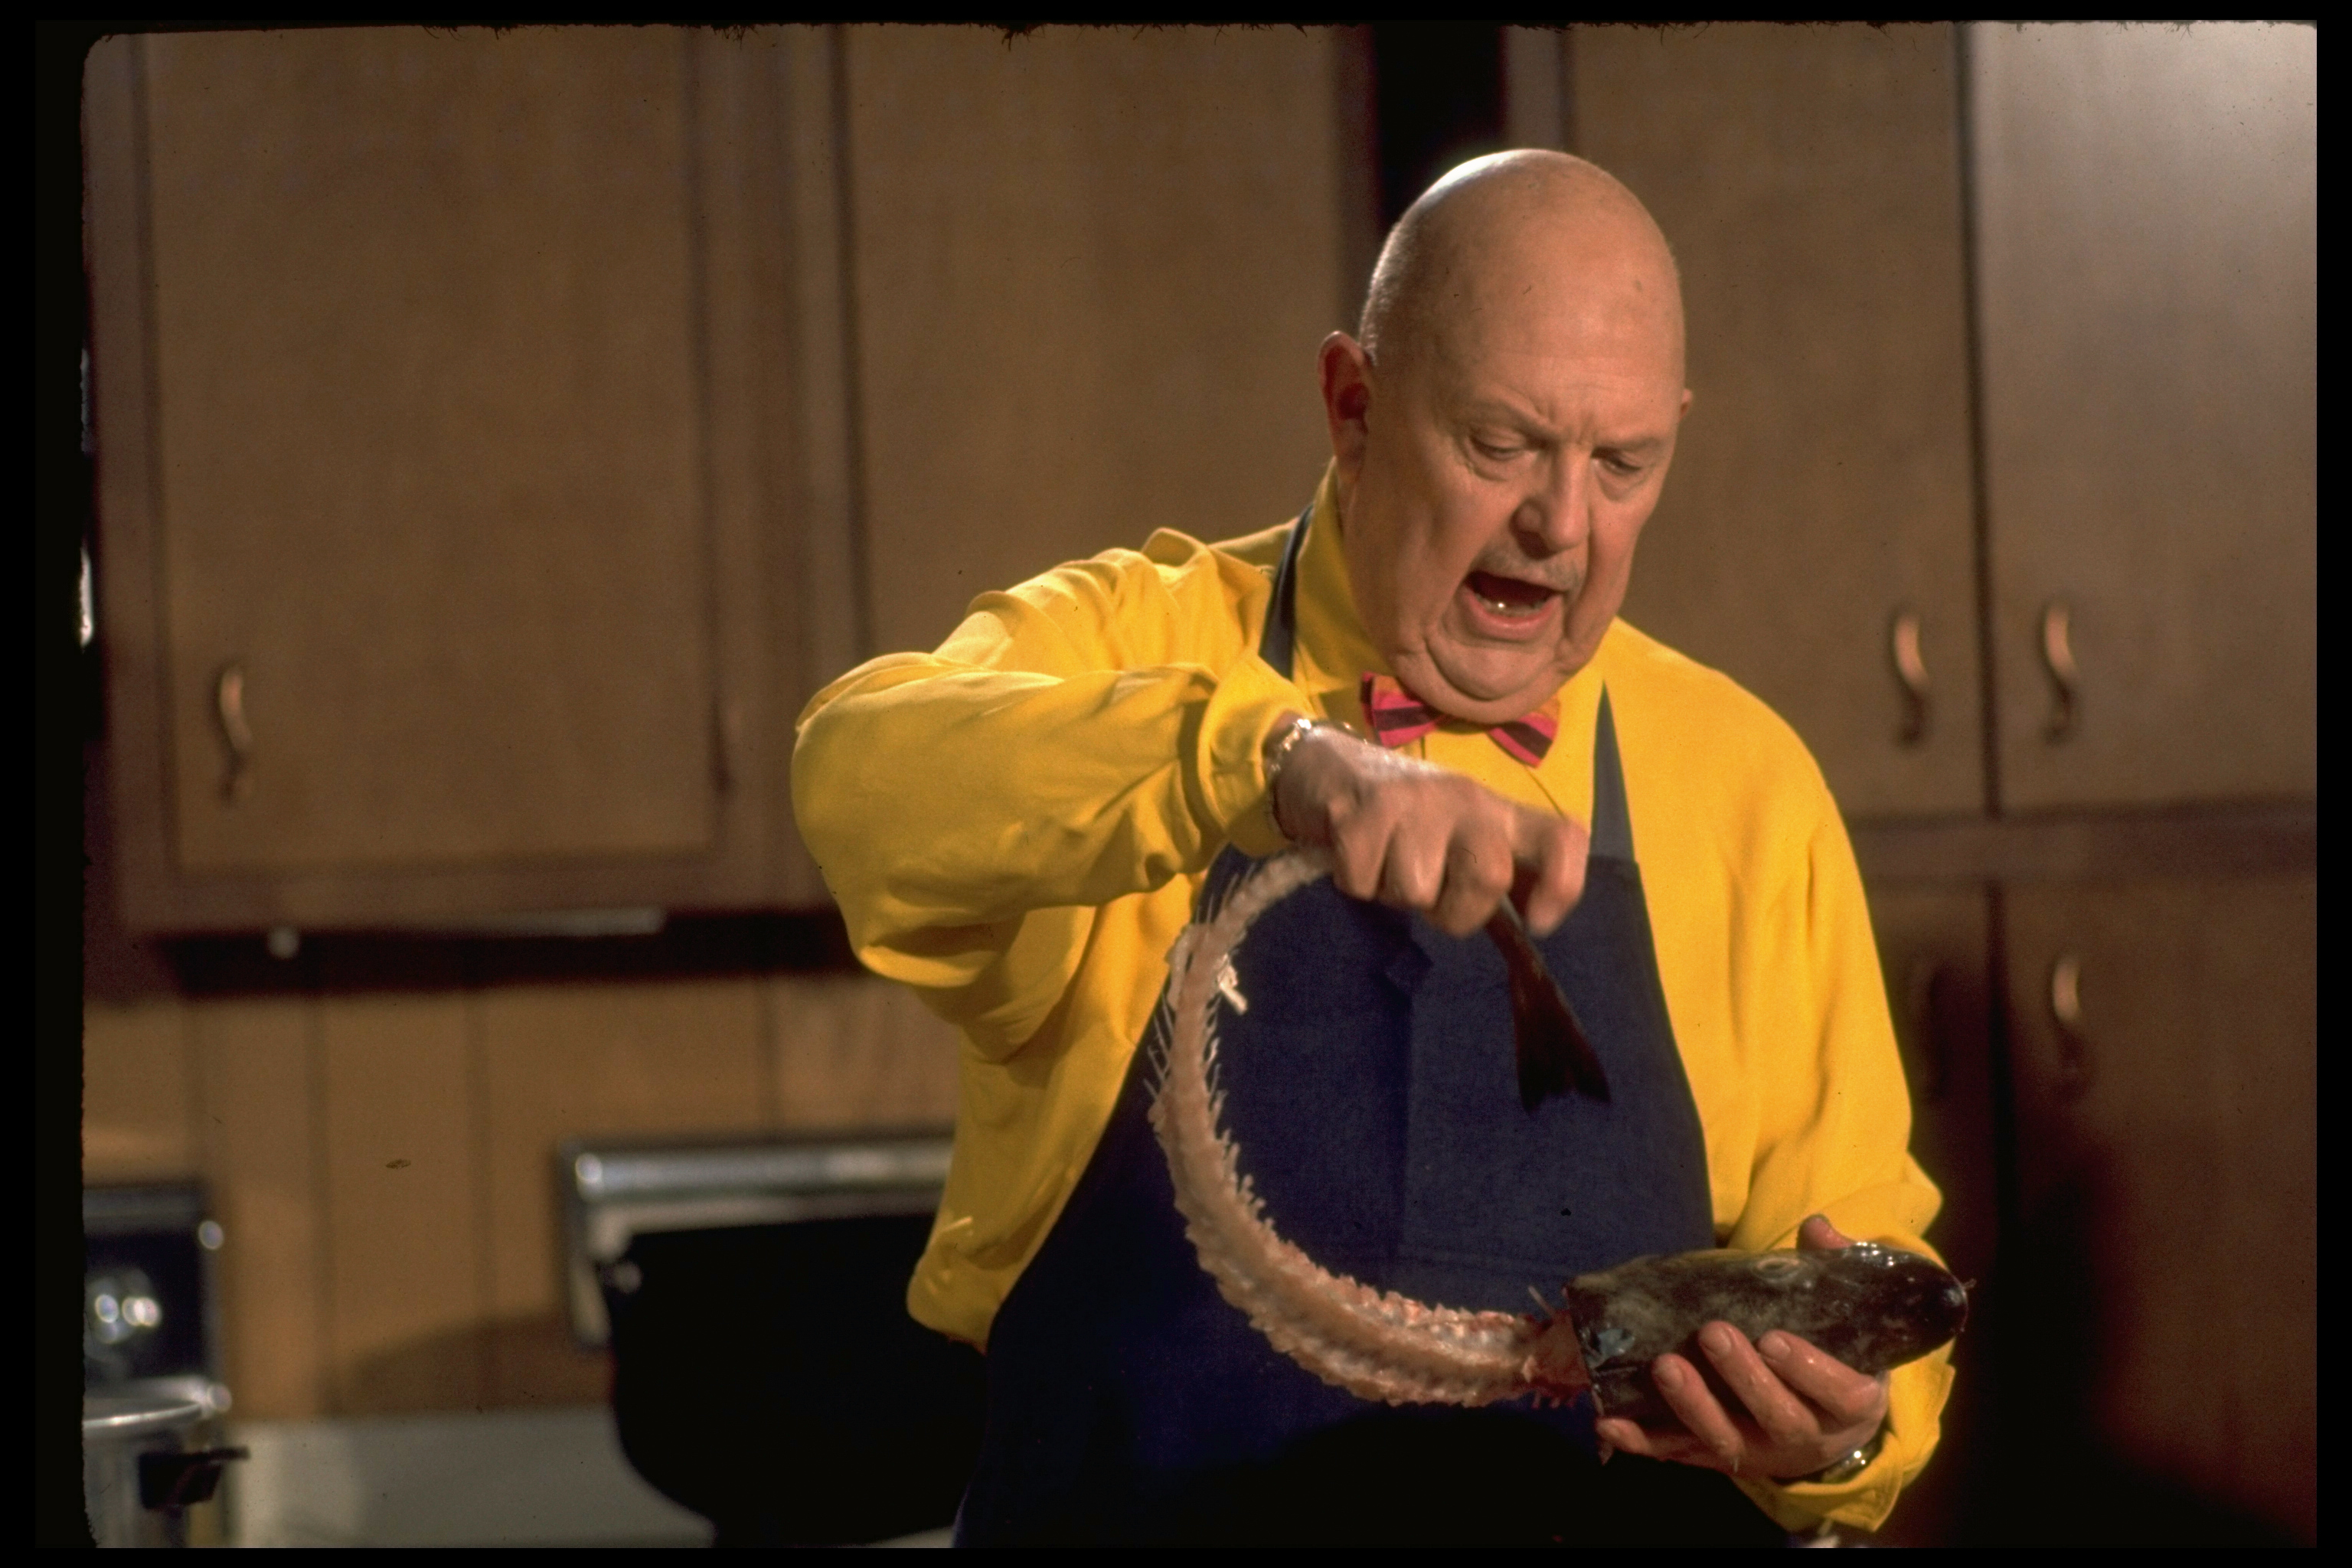 A man in a yellow shirt and apron holds a partially butchered fish